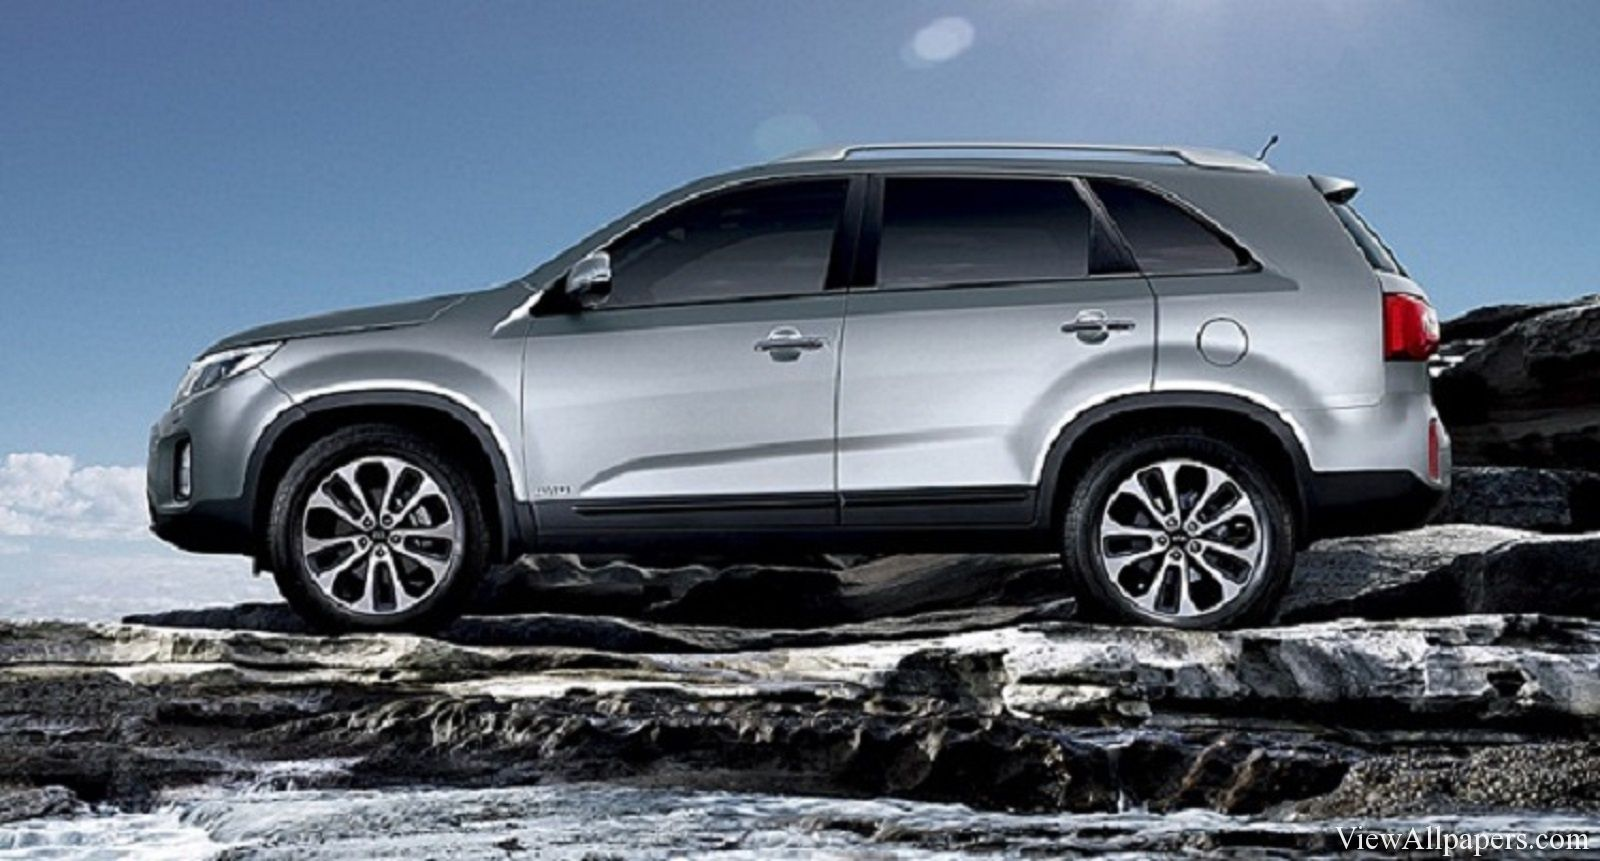 2016 toyota fortuner side view photo #49 | Photo, View ...